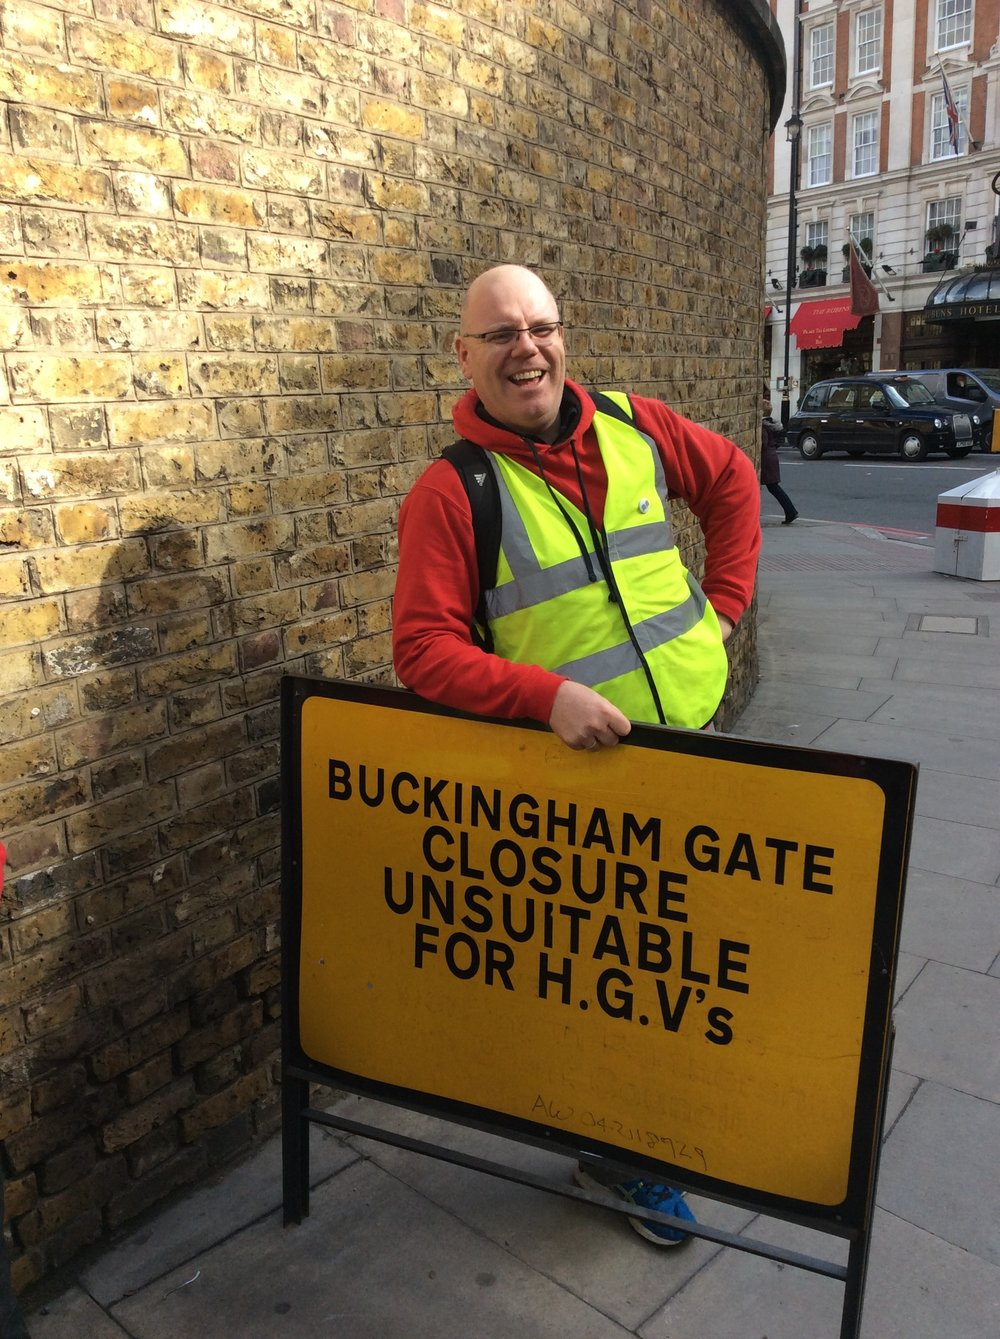 Wide loads need to take care....